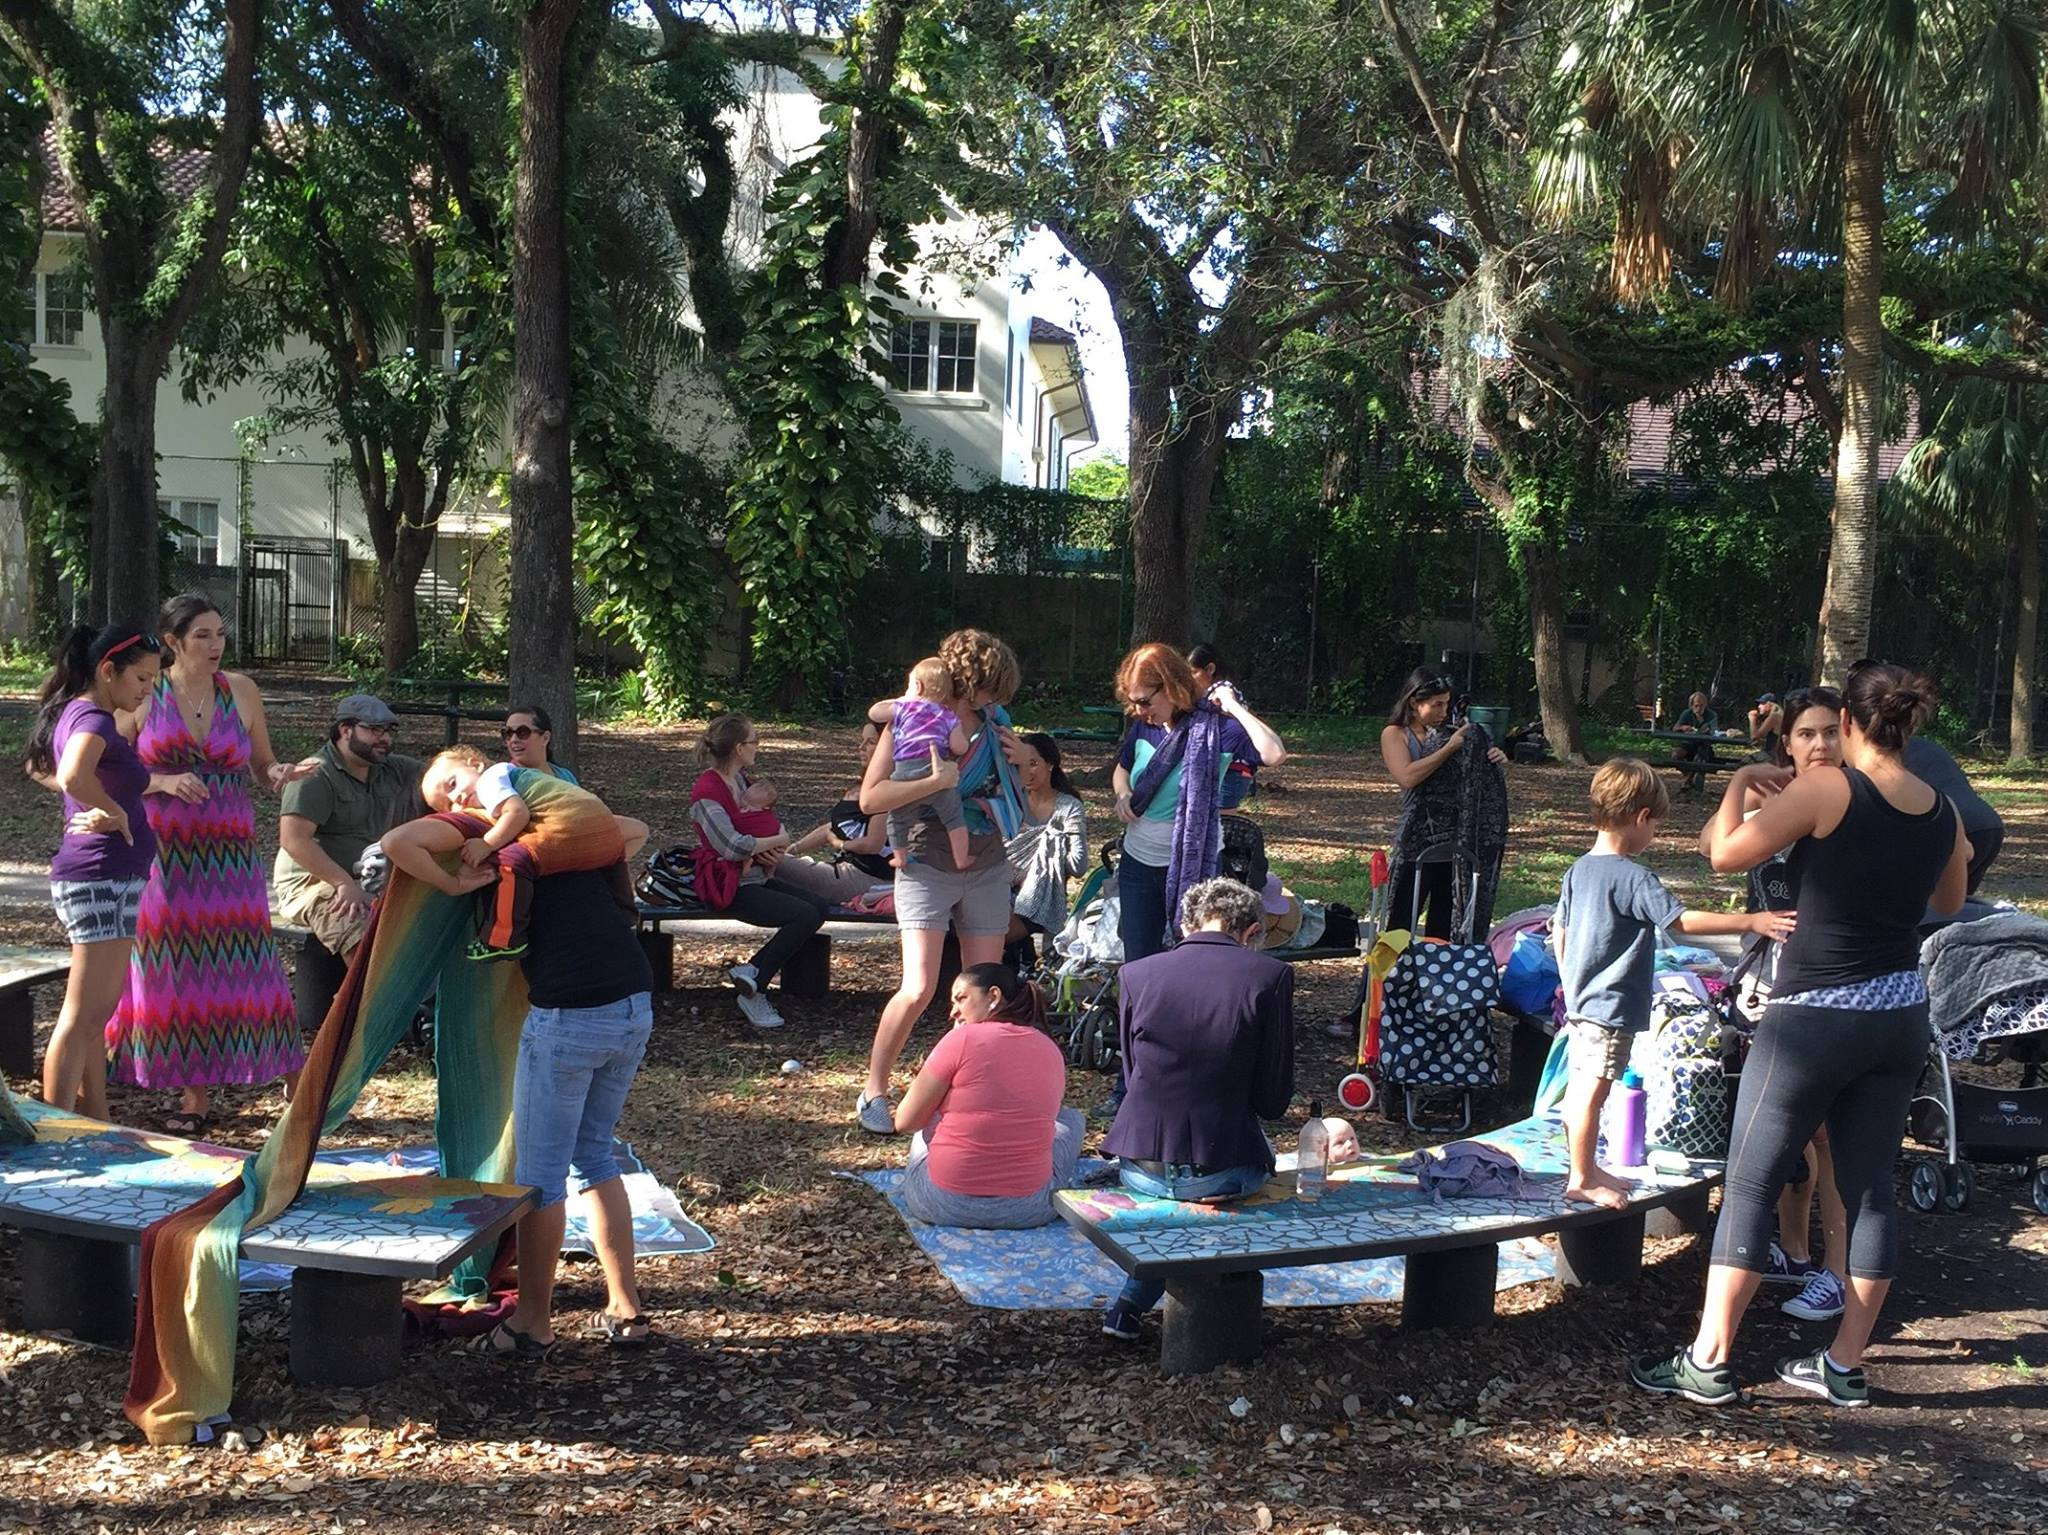 Stole this from our group's page. If you're a SFL mom, look us up on Facebook @ South Florida Babywearing!